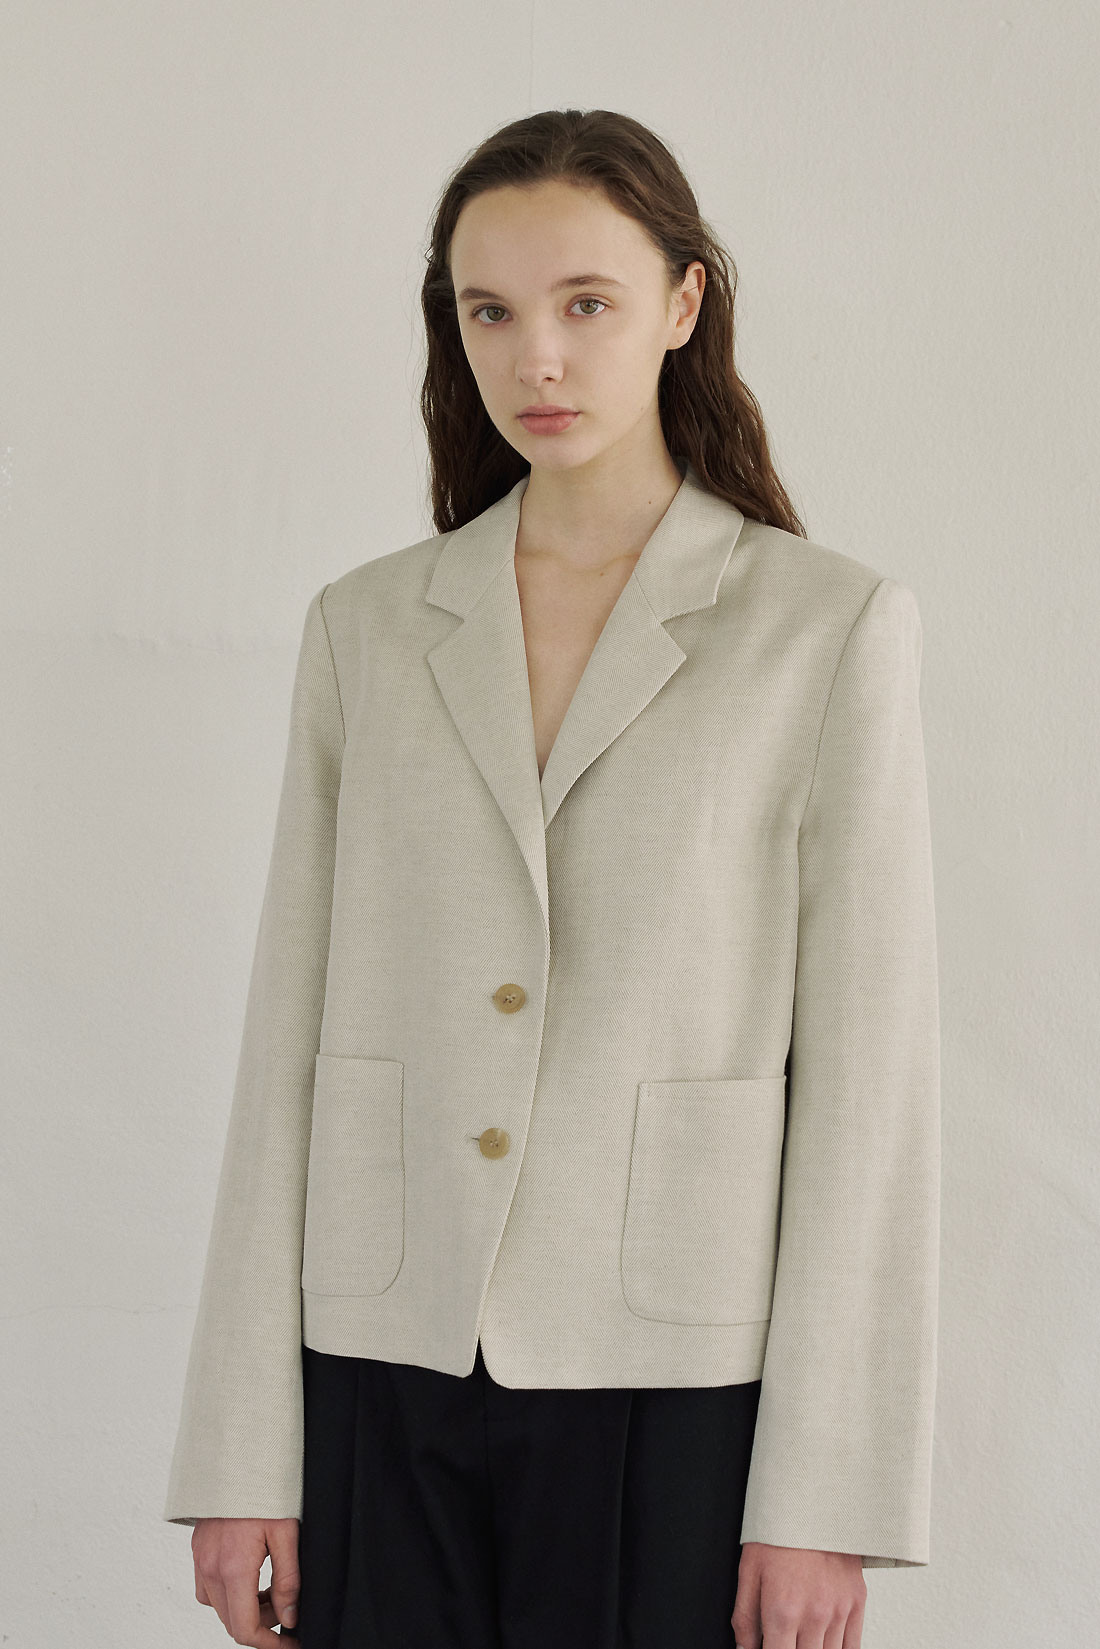 Bout Linen Jacket(Natural)Reorder